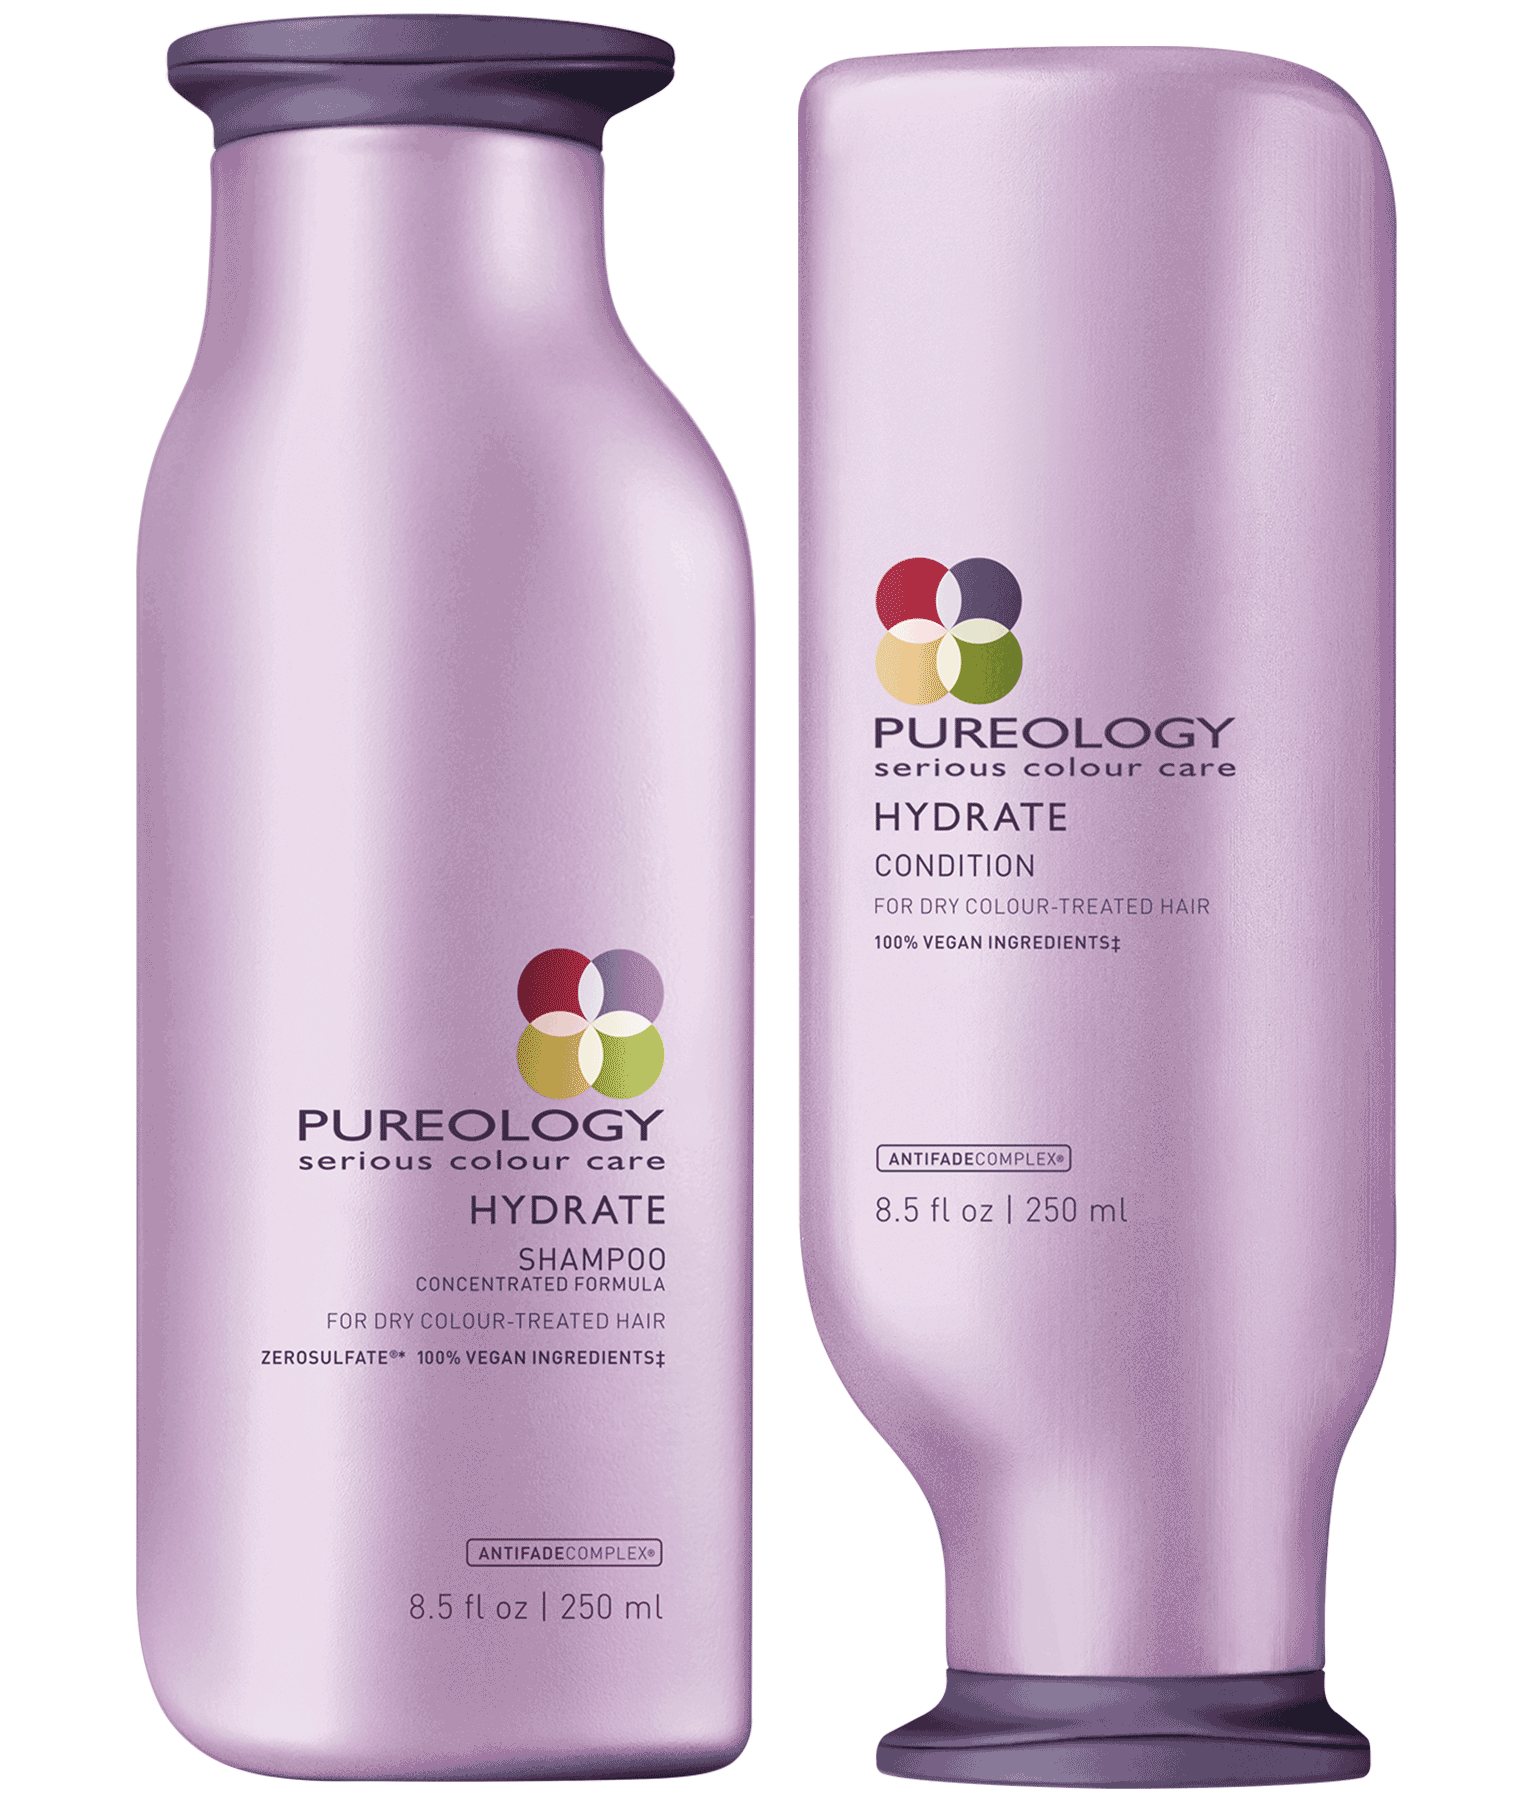 Best Shampoo For Vibrant Colored Hair